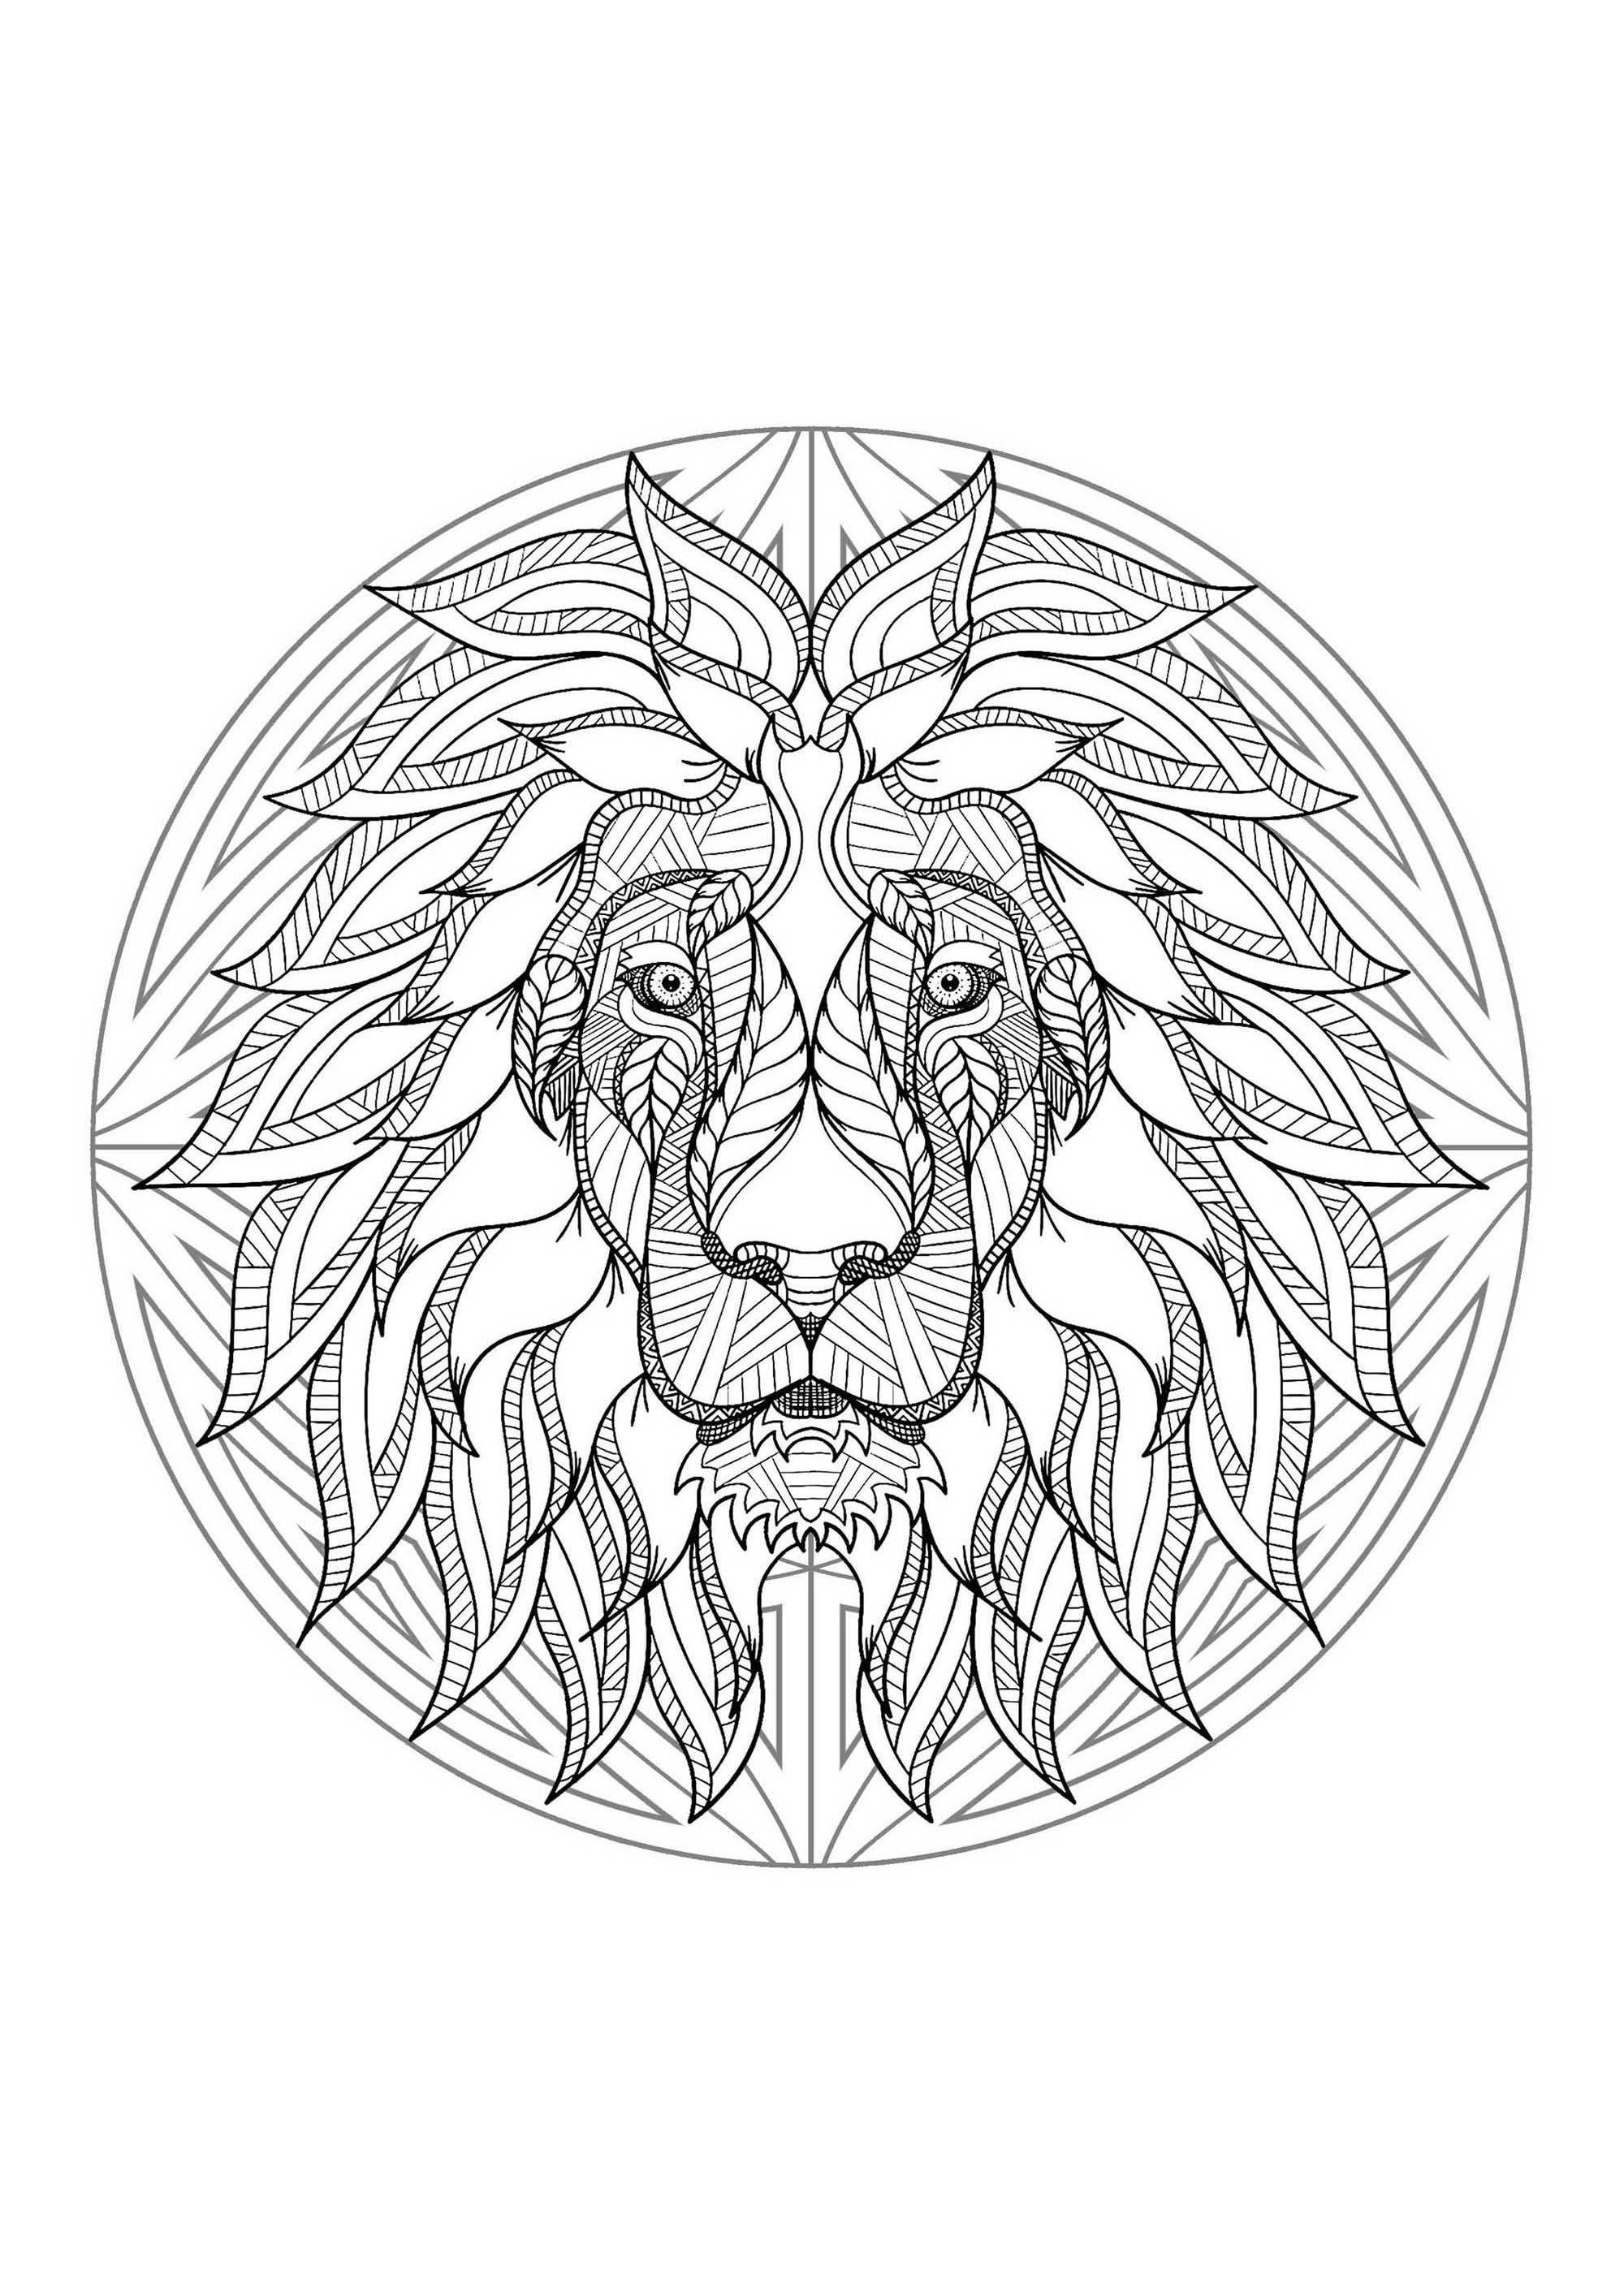 Mandala To Color With Very Special Lion Head And Simple Patterns